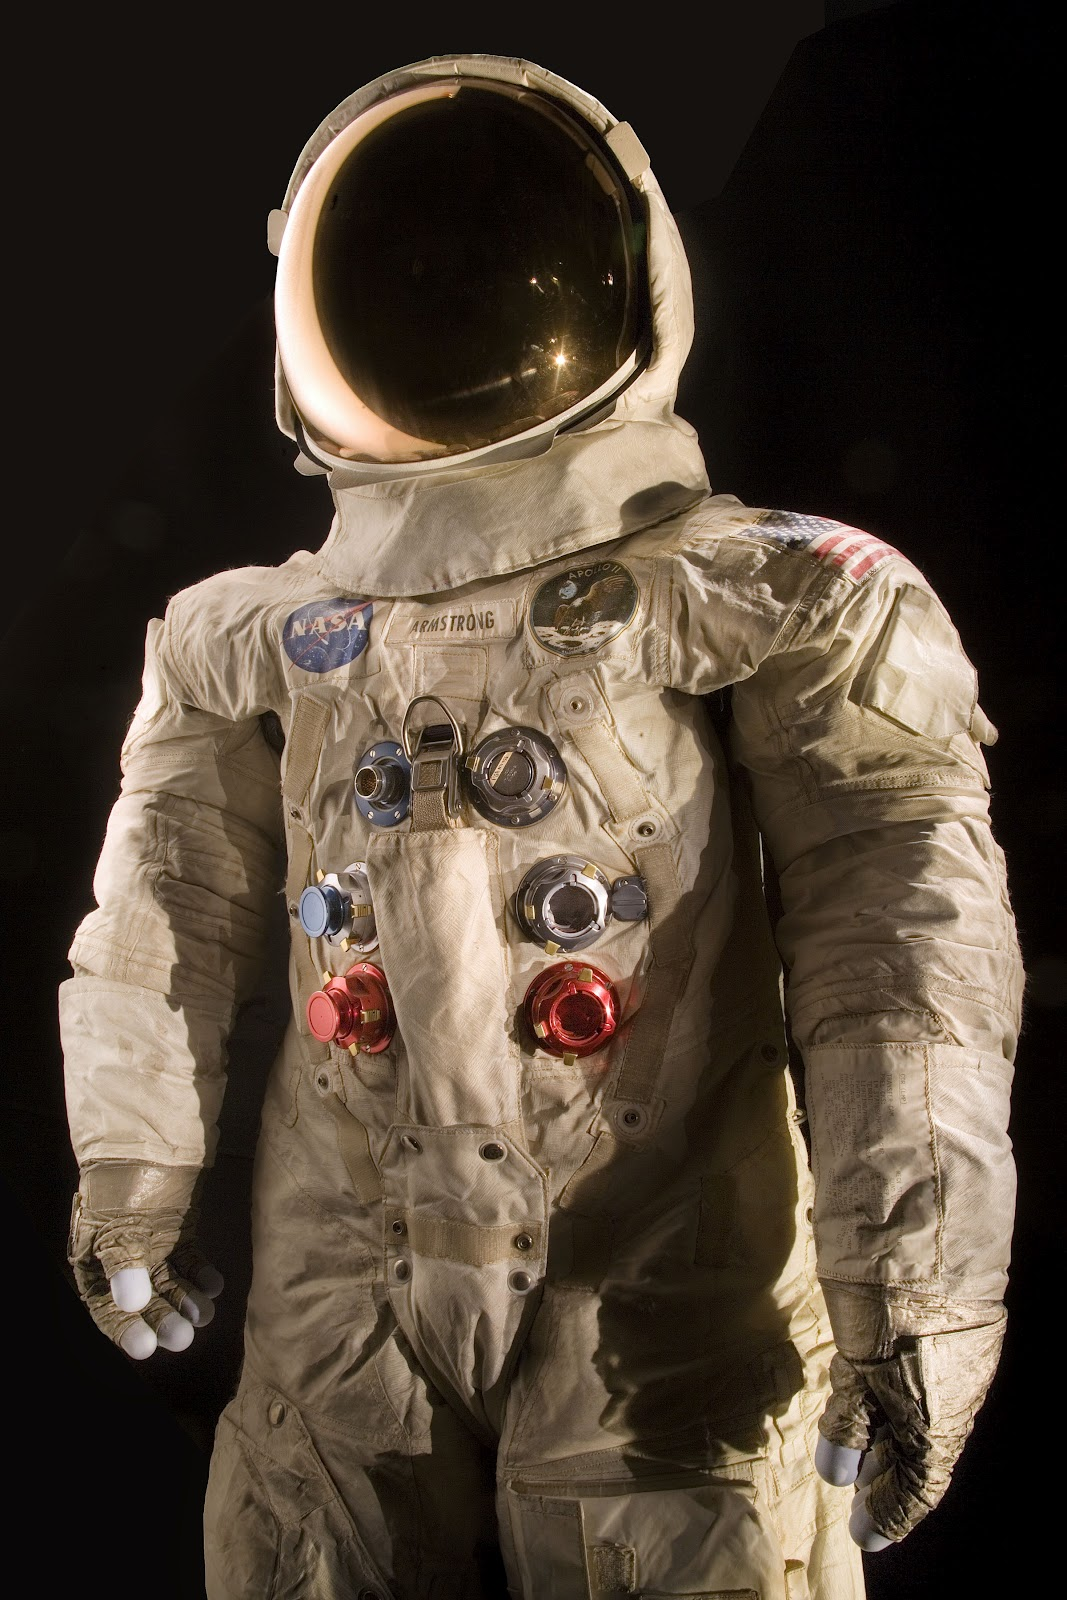 apollo space suit development - photo #13